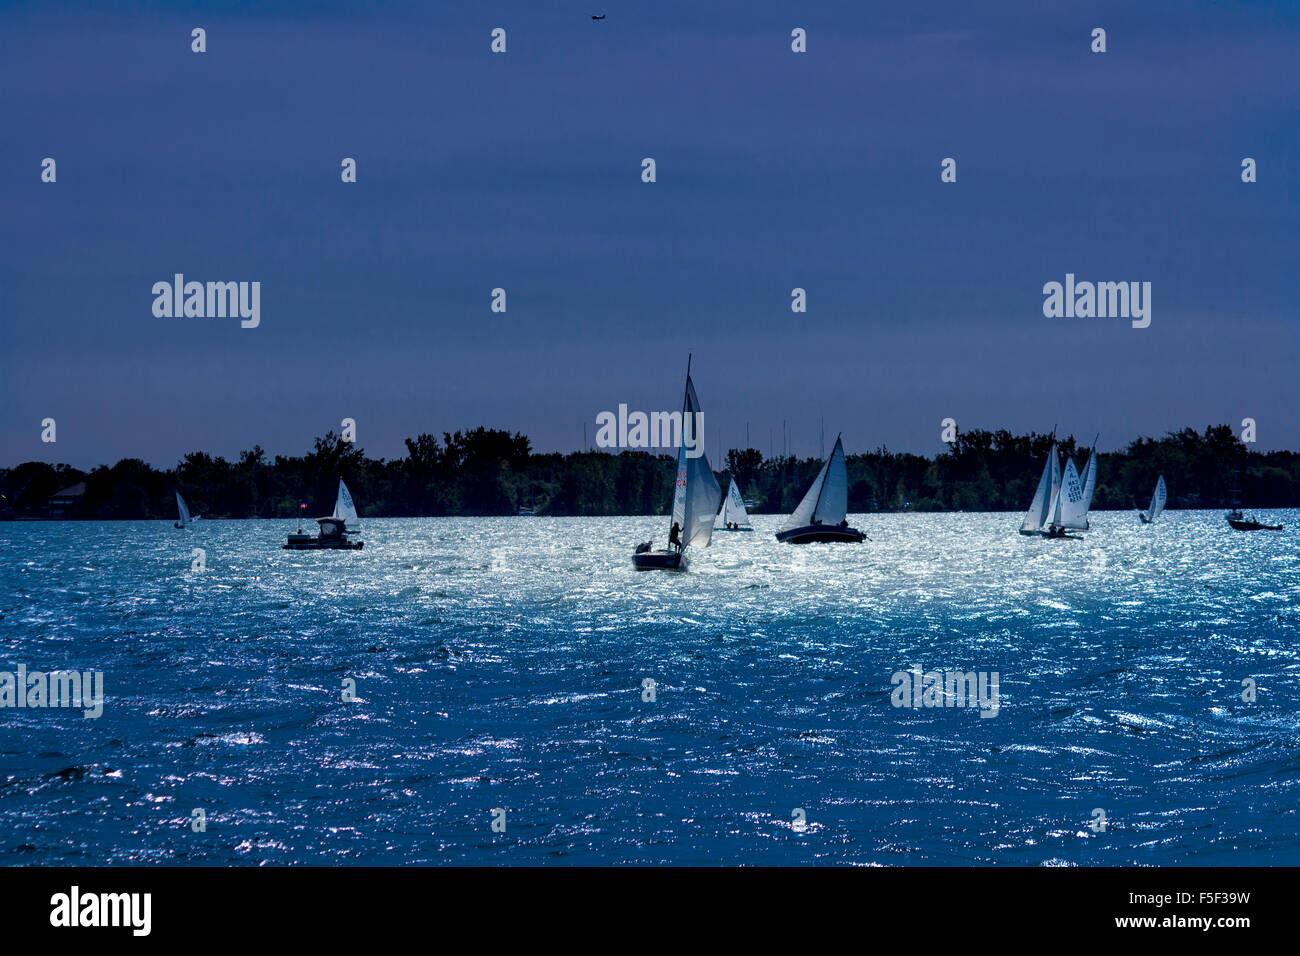 sailboats-in-moonlight-on-lake-ontario-F5F39W.jpg